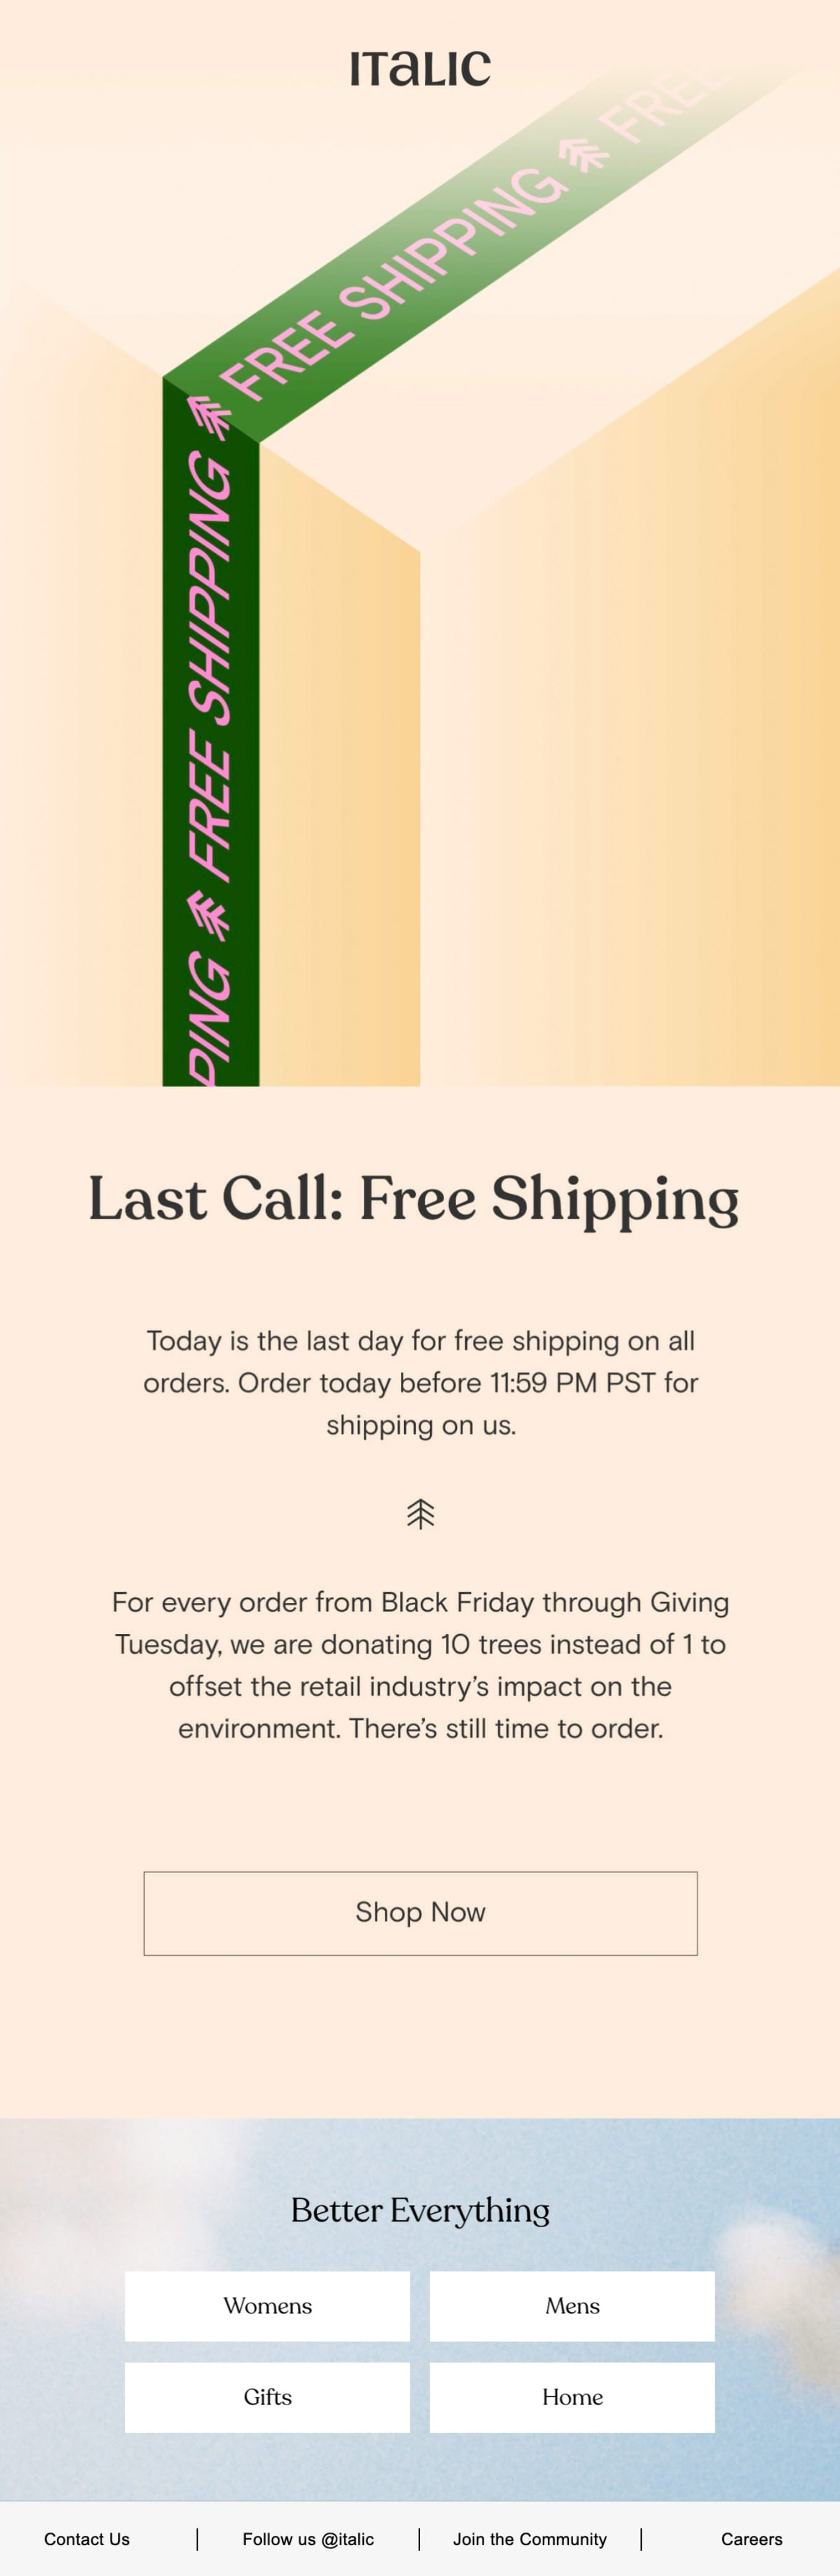 Last chance for free shipping Email Screenshot